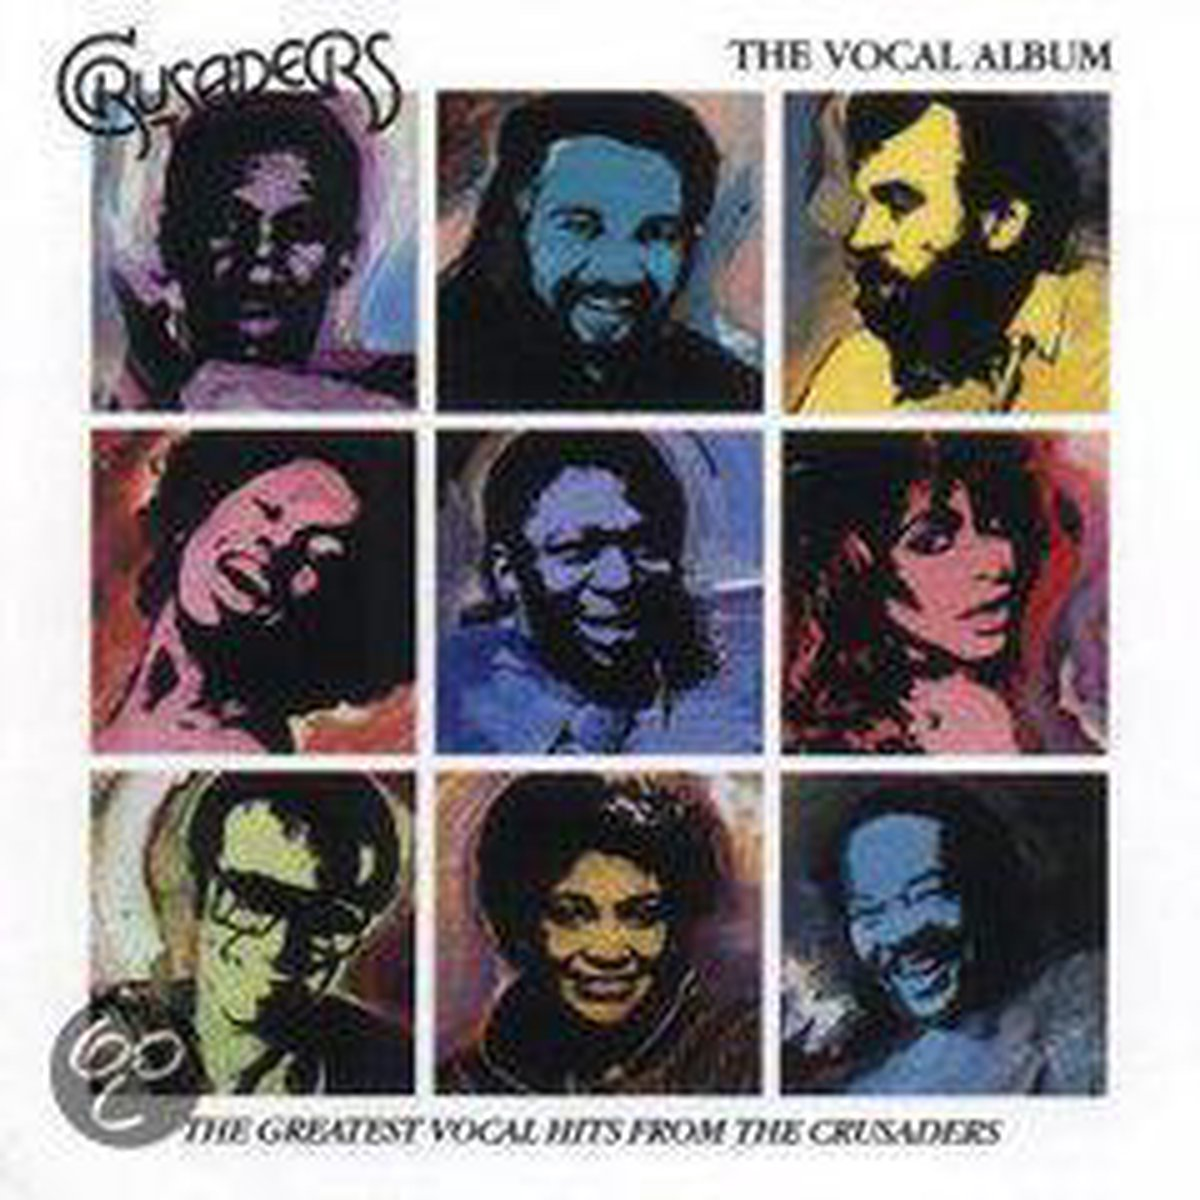 The Vocal Album - The Crusaders